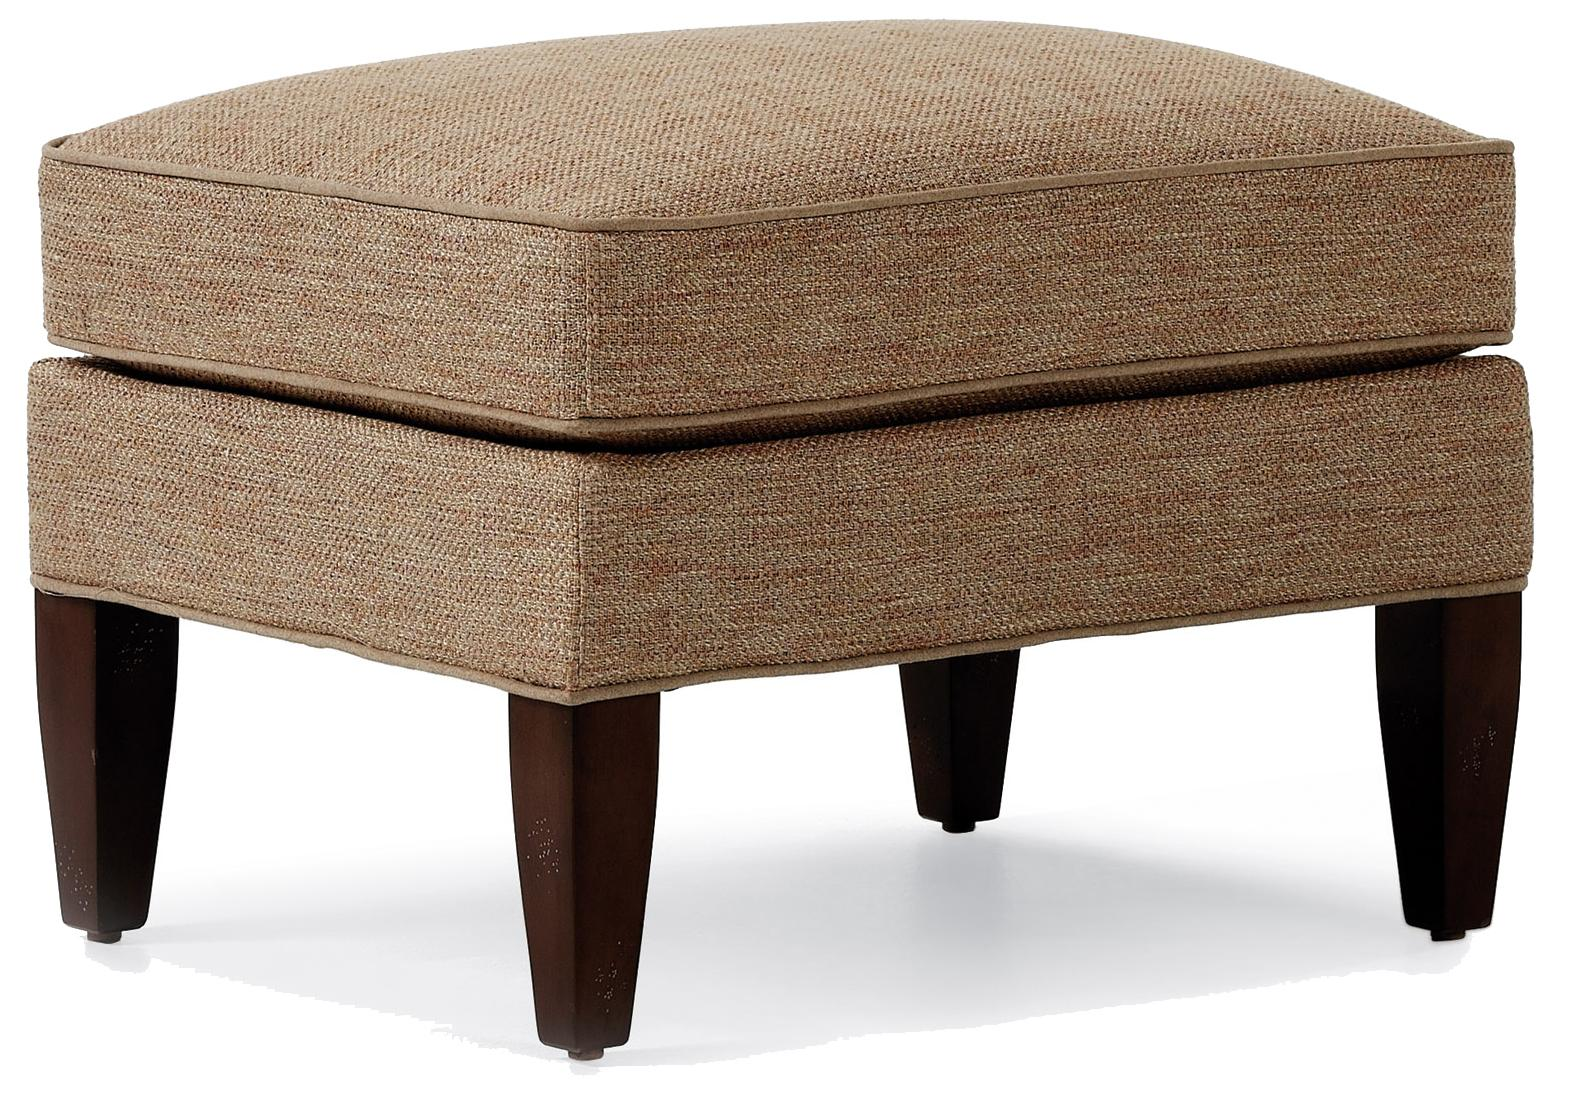 Fine Upholstered Accents Ottoman    by Jessica Charles at Jacksonville Furniture Mart